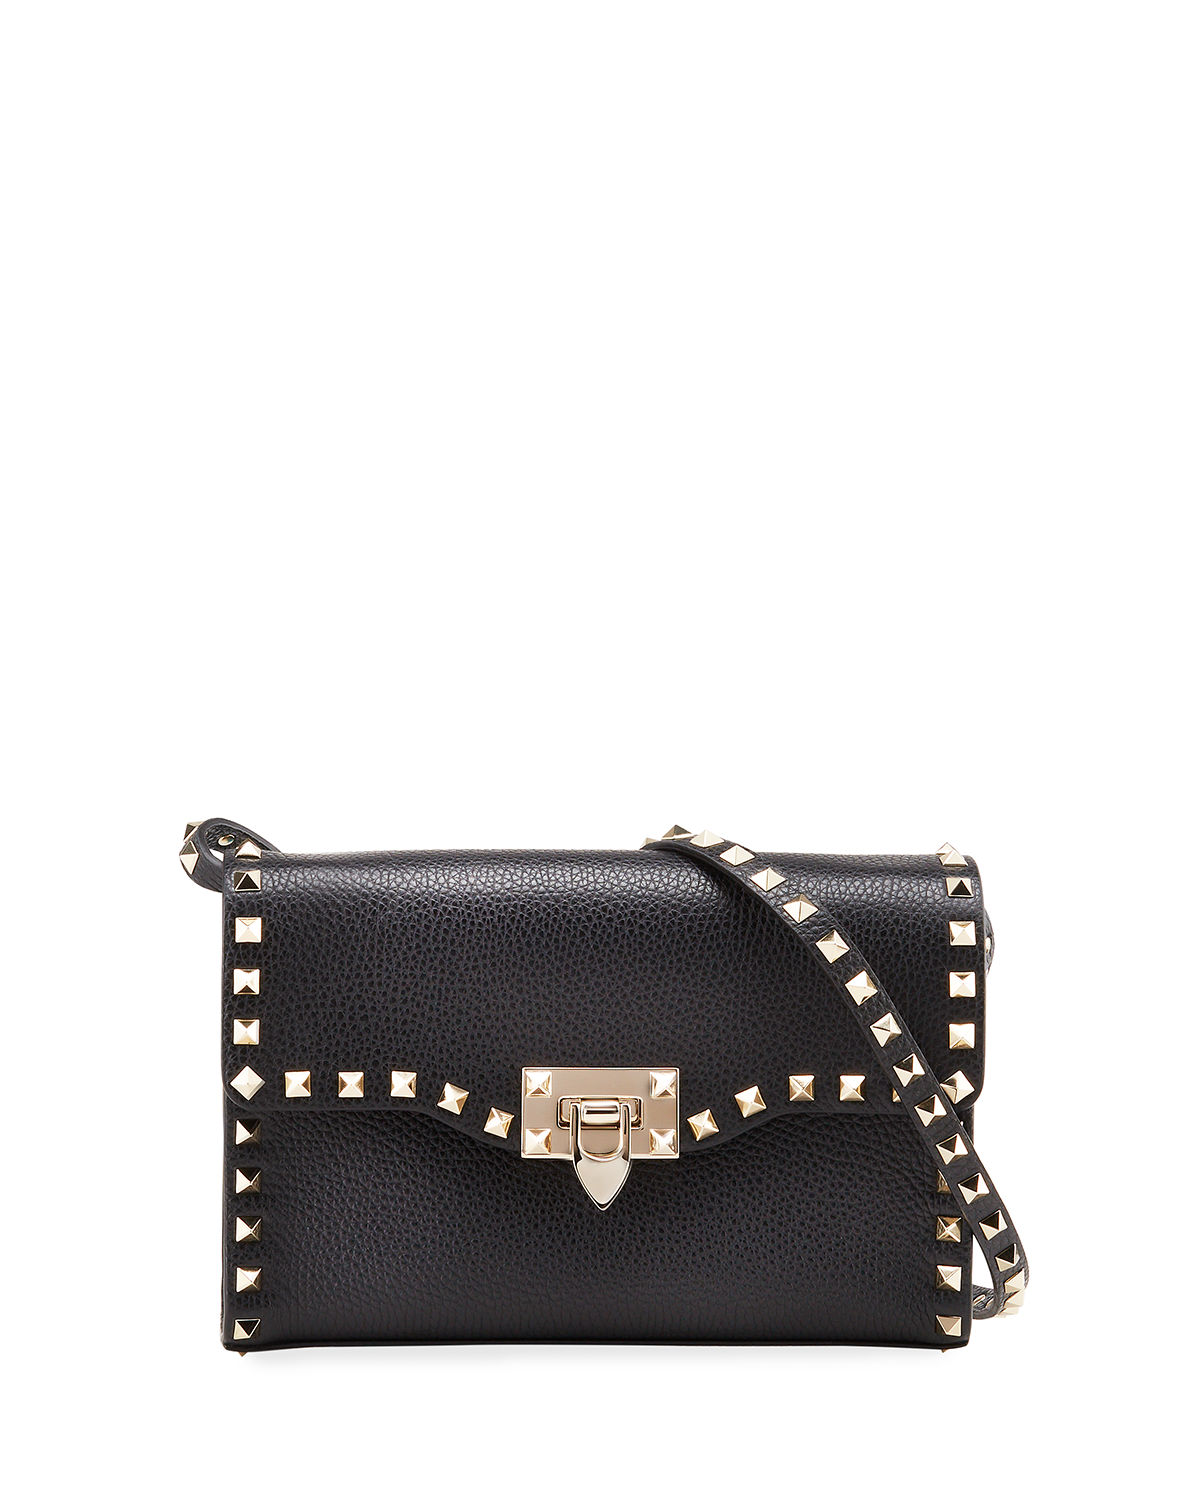 4c7597c5e4d Valentino Garavani Rockstud Medium Shoulder Bag